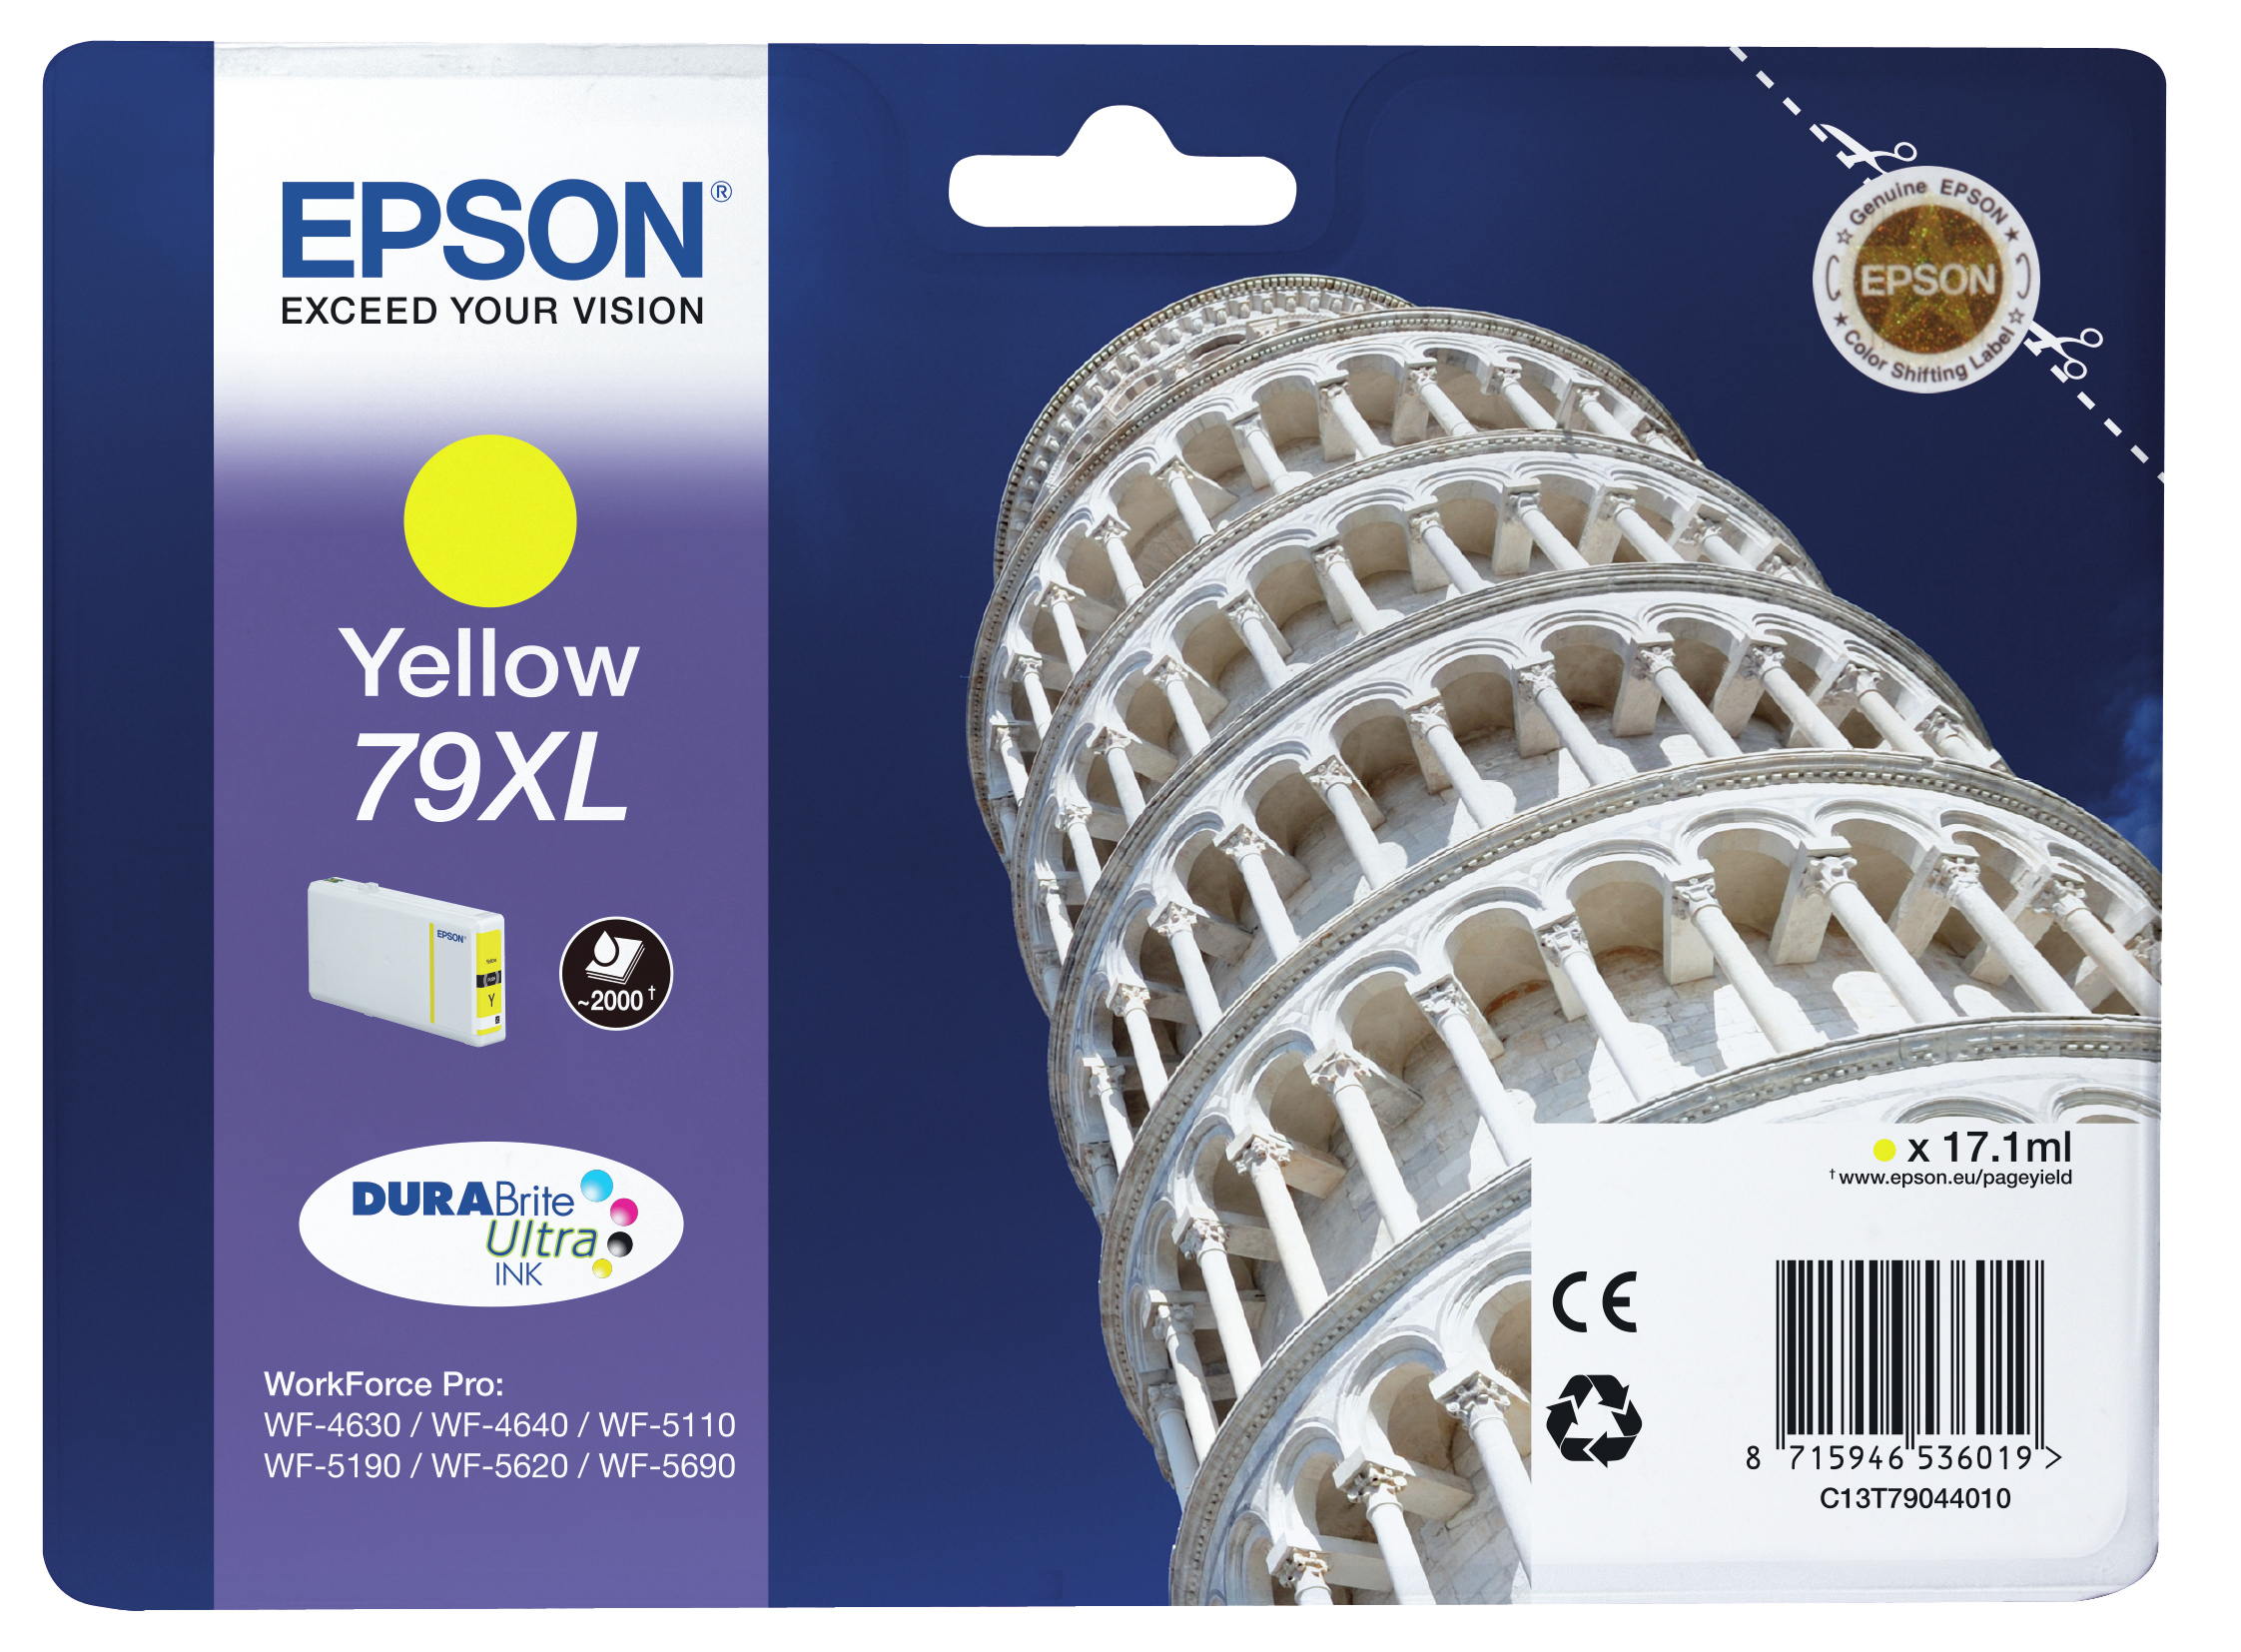 Epson 79XL - High Capacity - Yellow - Original - Ink Cartridge - For WorkForce Pro WF-4630DWF, WF-4640DTWF, WF-5110DW, WF-5190DW, WF-5620DWF, WF-5690DWF C13T79044010 - C2000